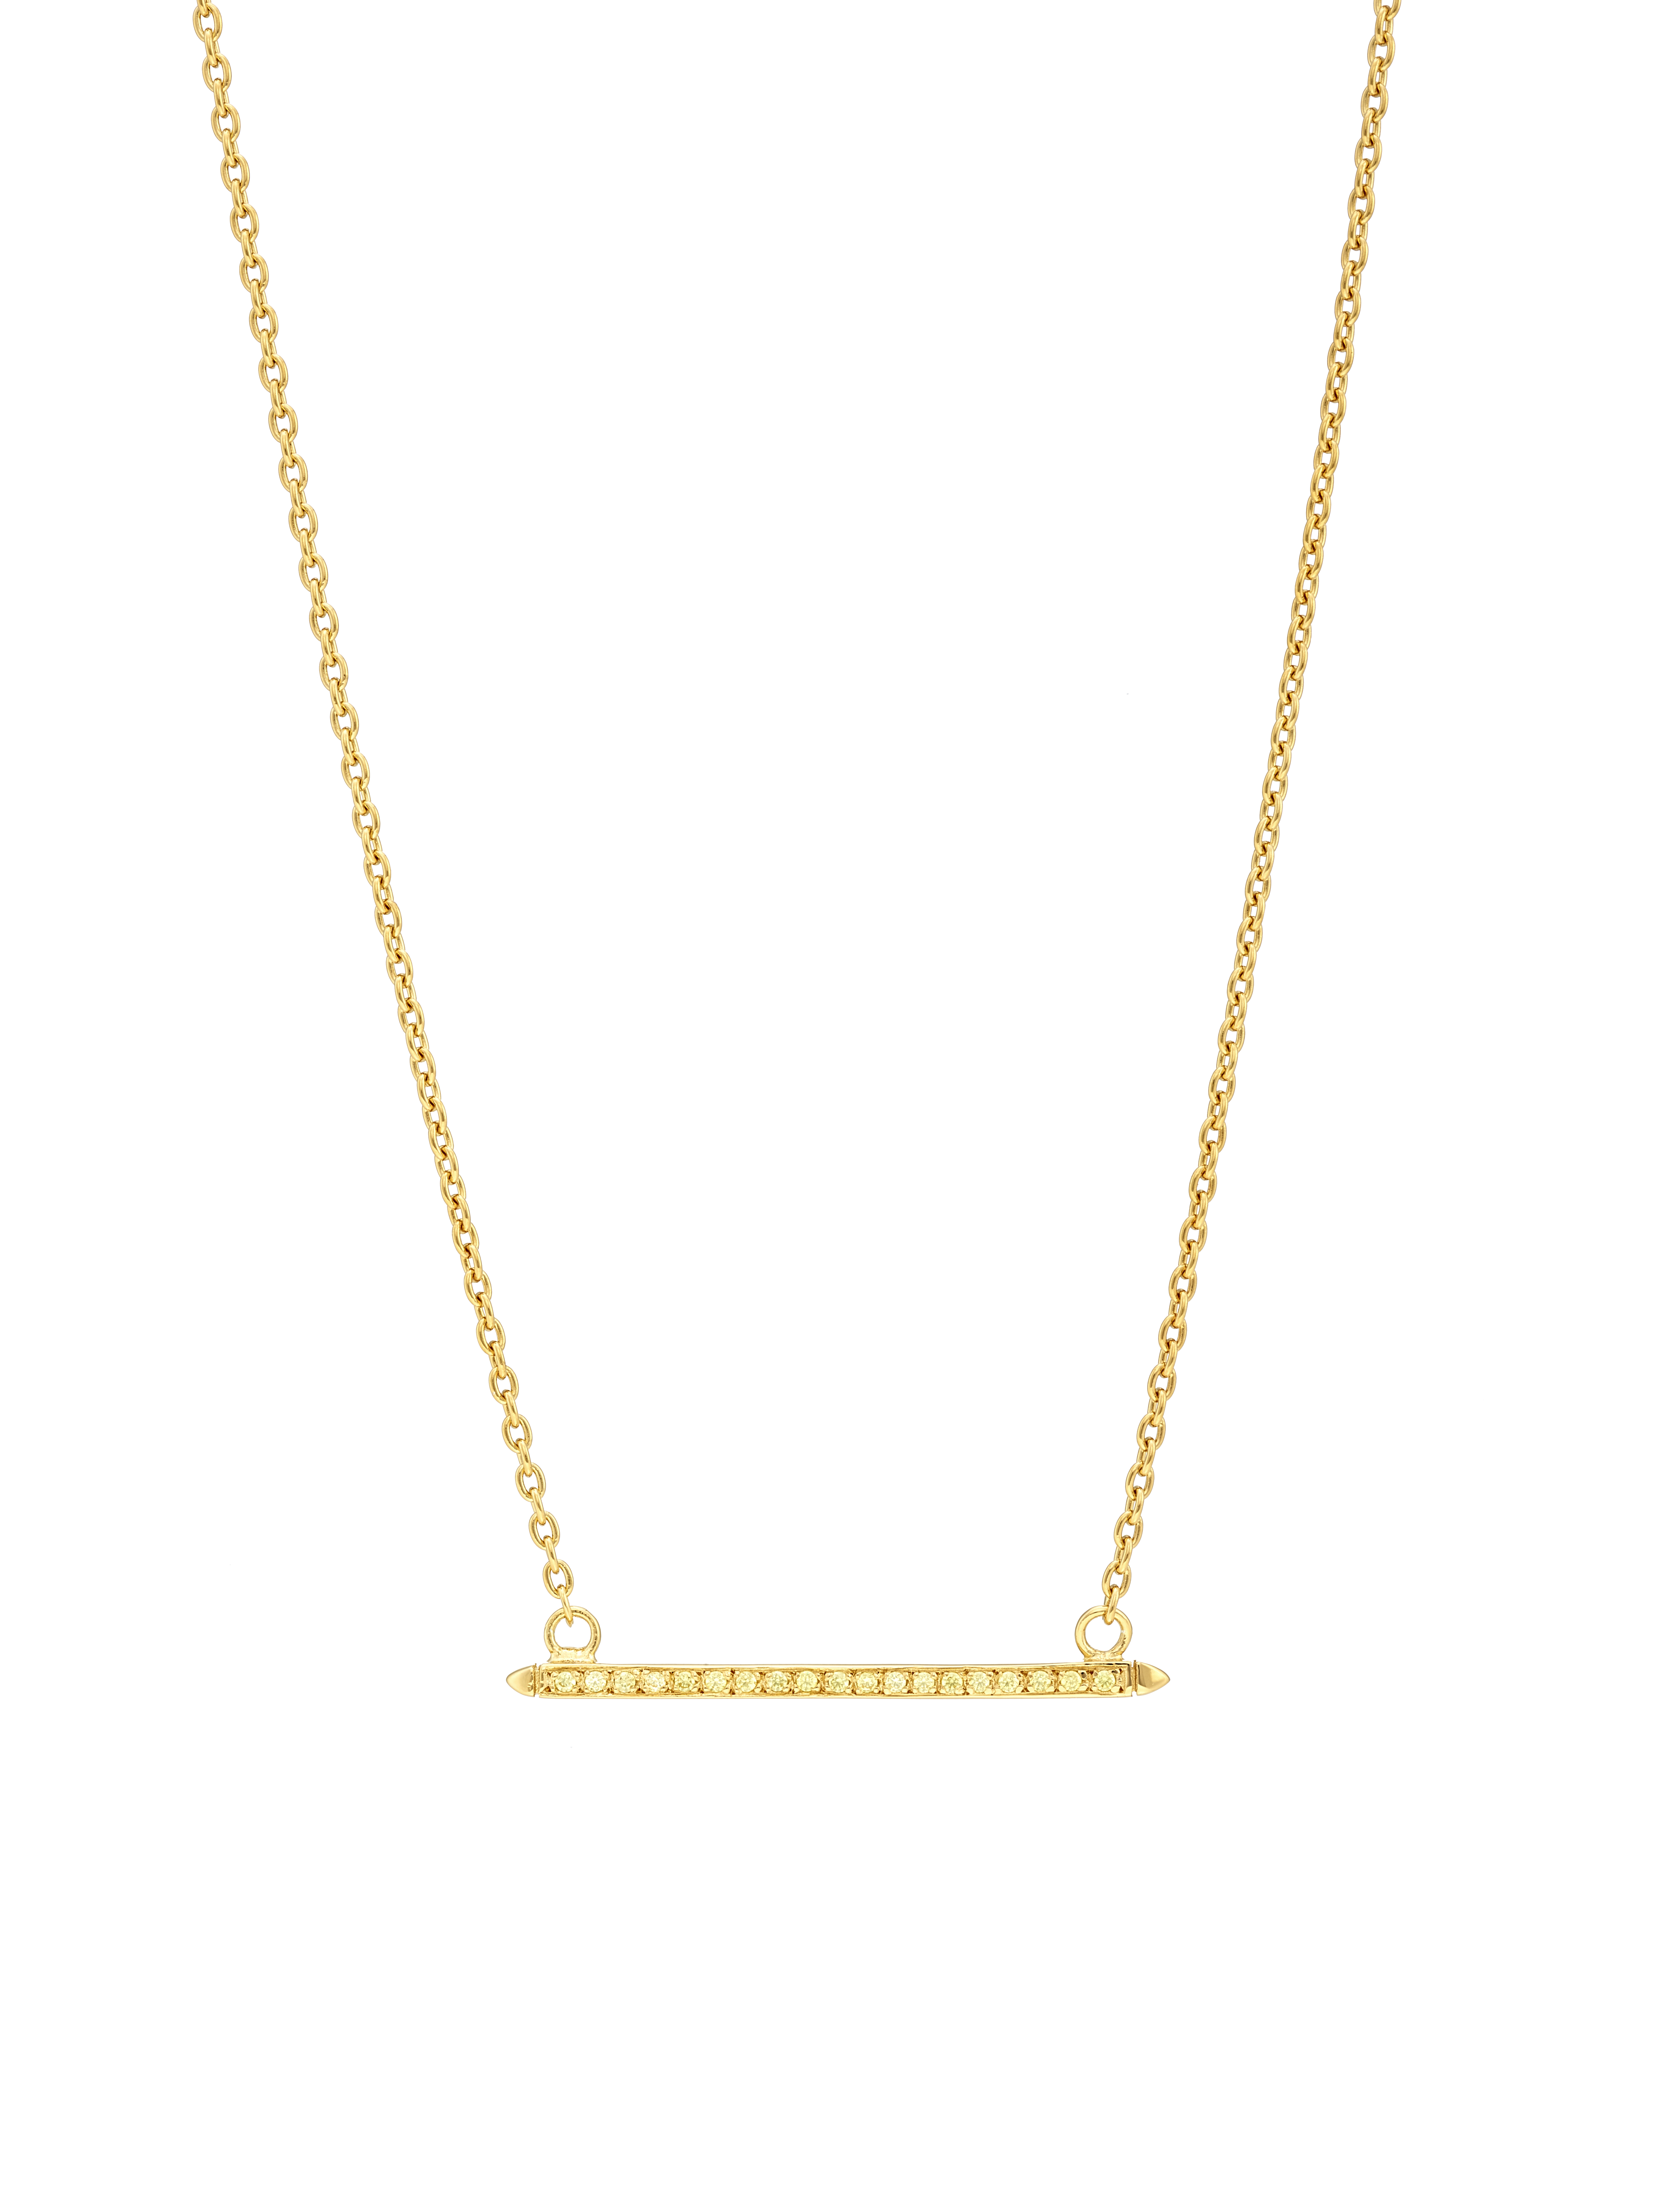 Bar Necklace, yellow CZ